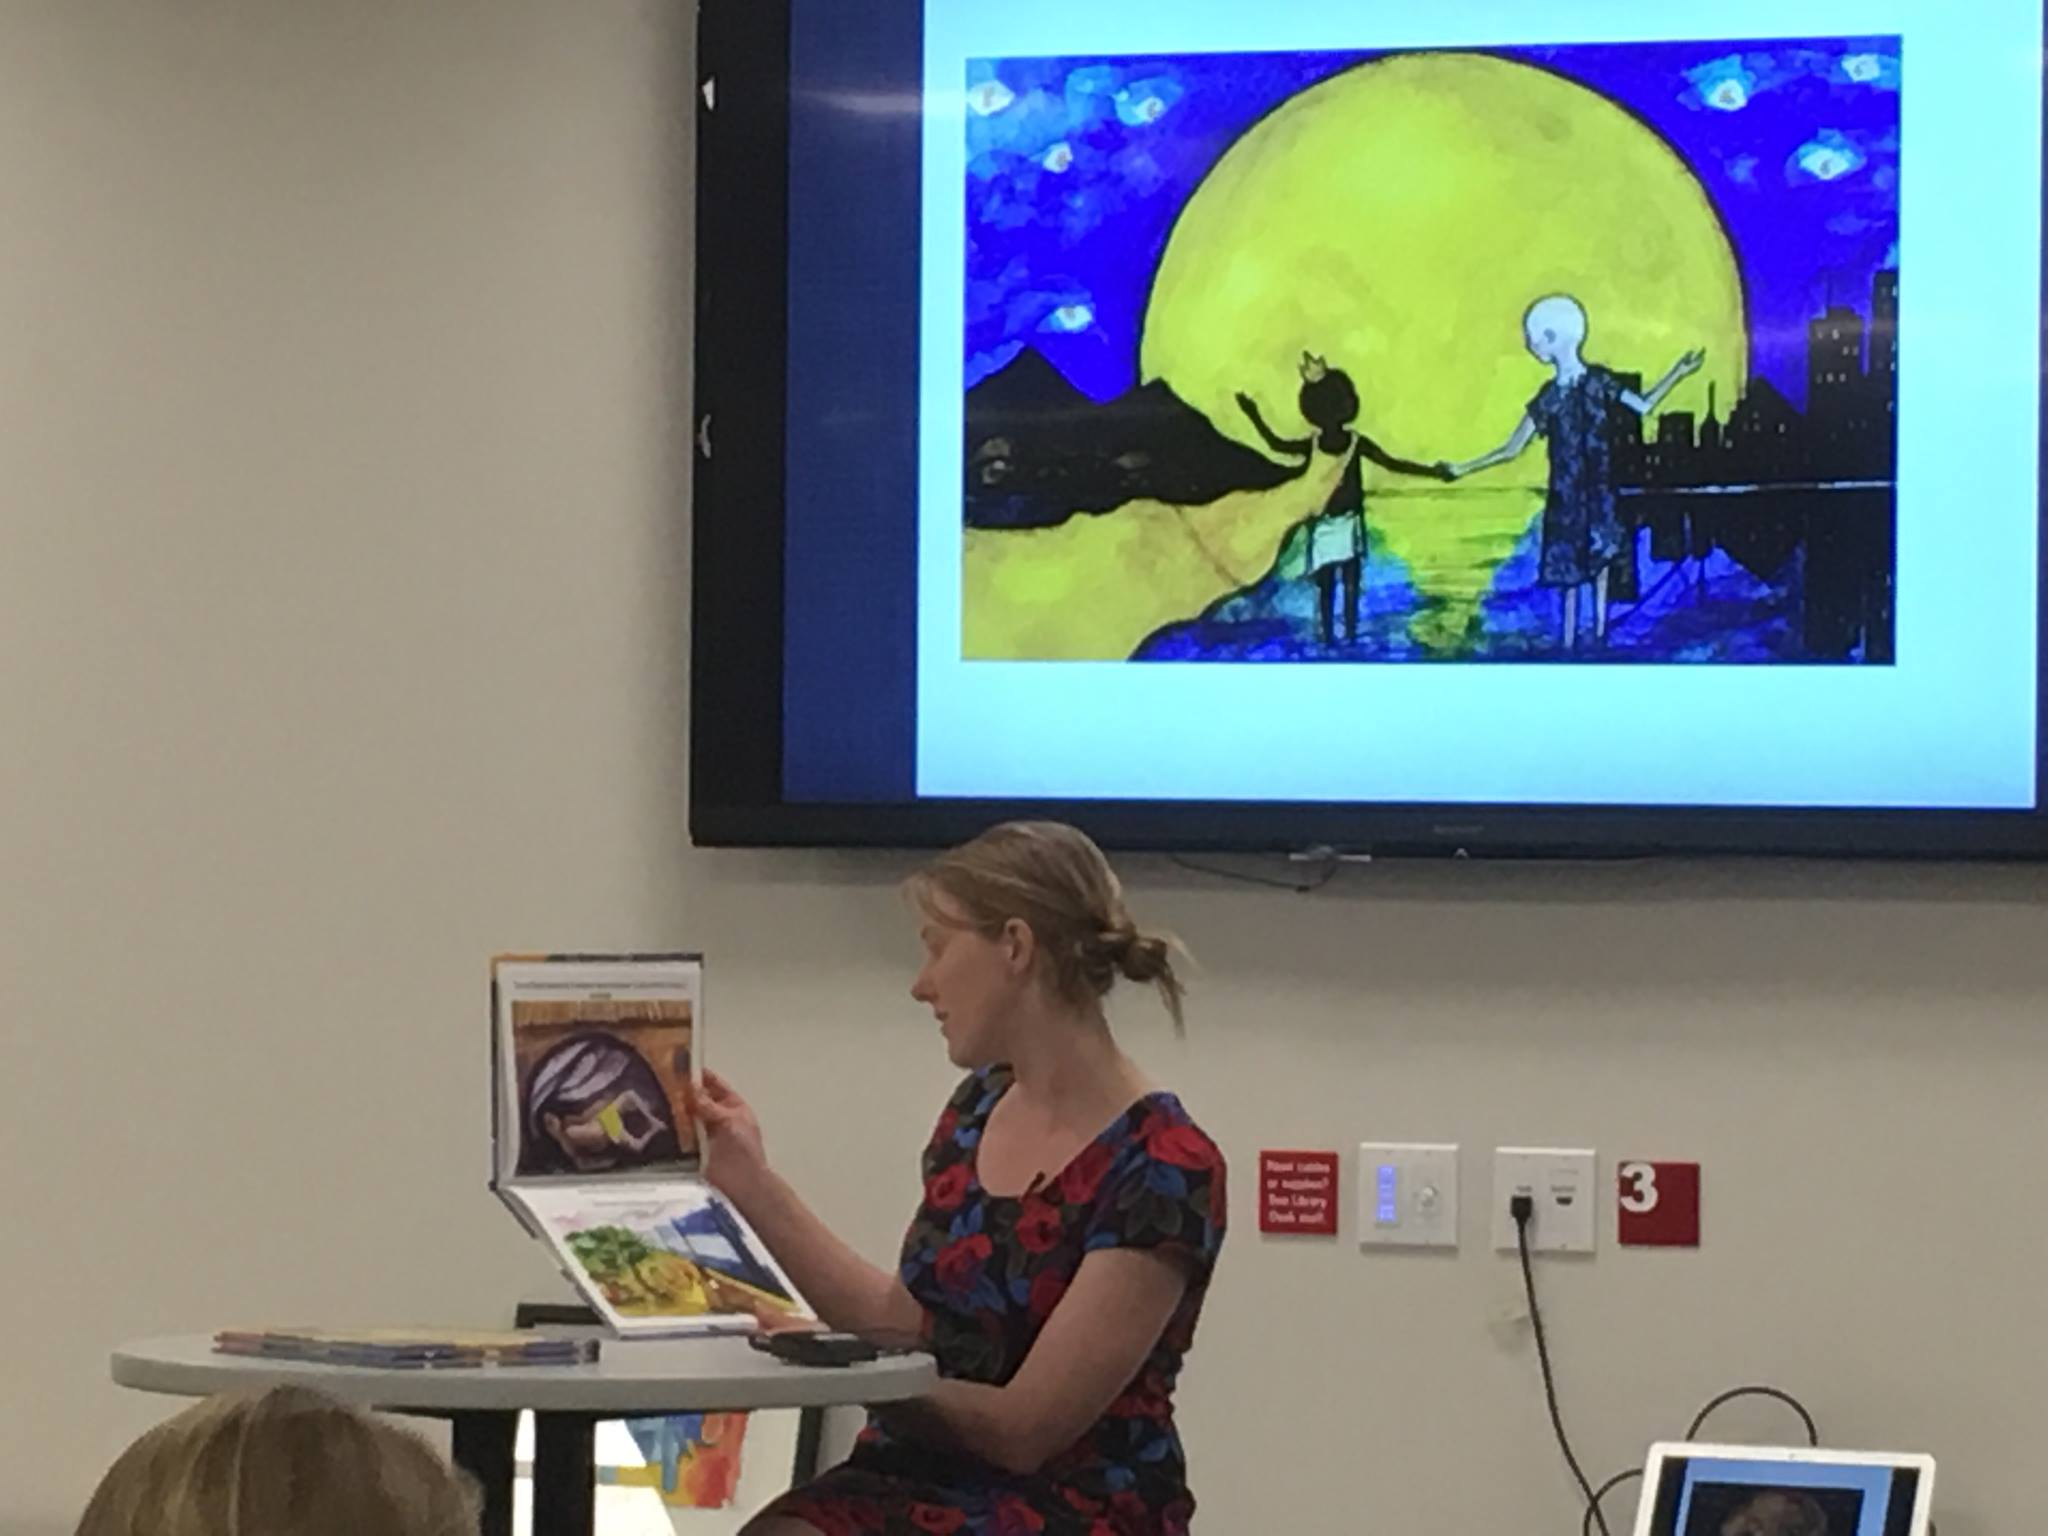 Author Daniela Anderson reads from The Moon Prince and The Sea at its June 6 book launch in Salt Lake City, Utah.